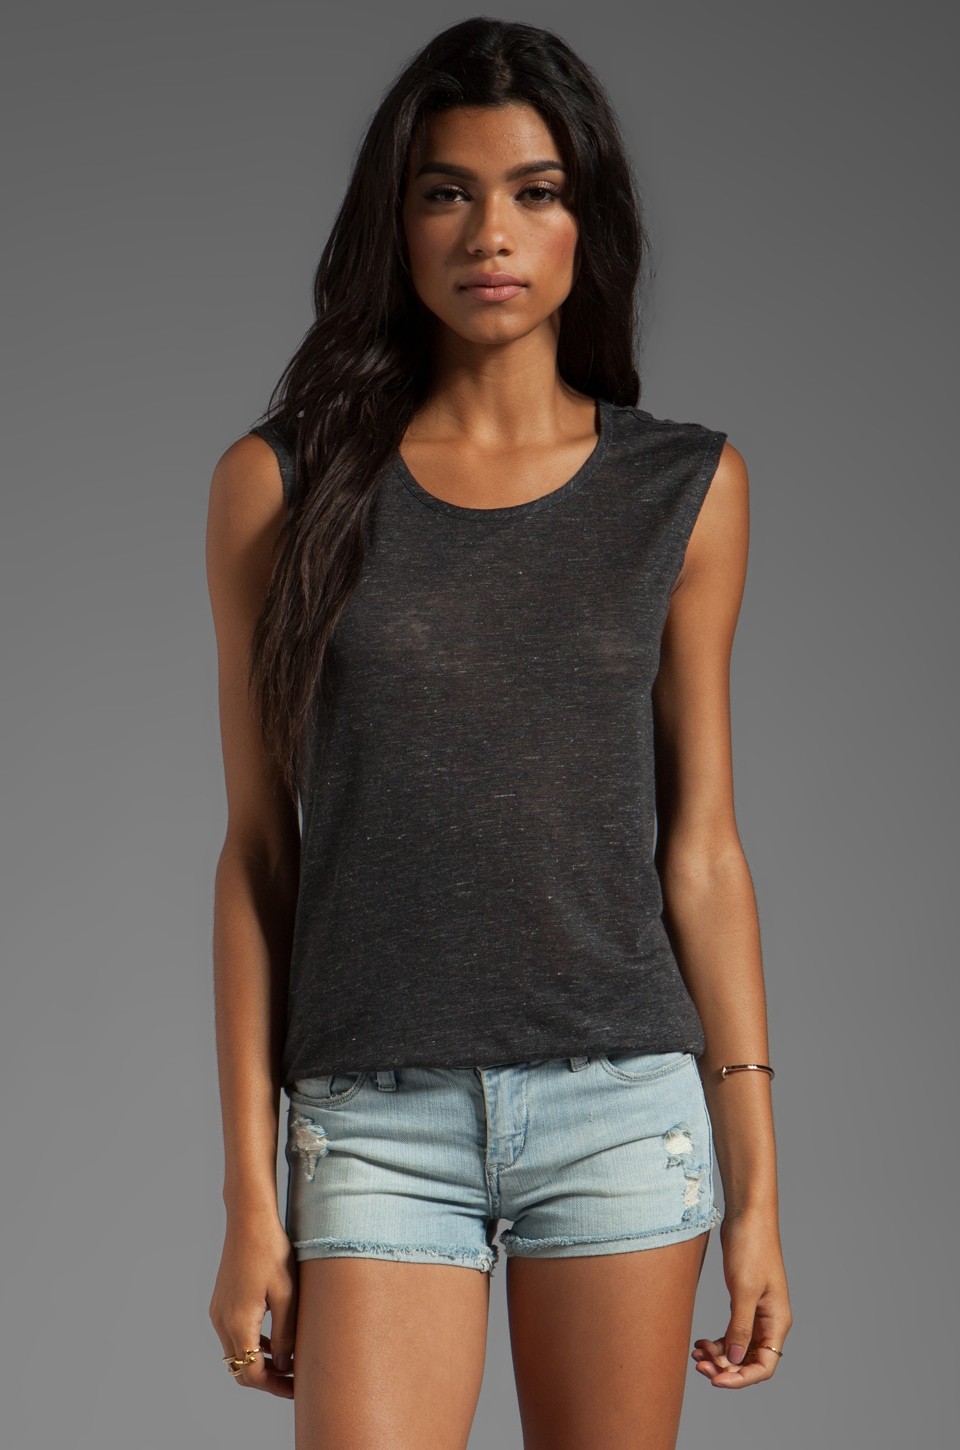 Joie Heather Linen Slub Junie Top in Heather Charcoal